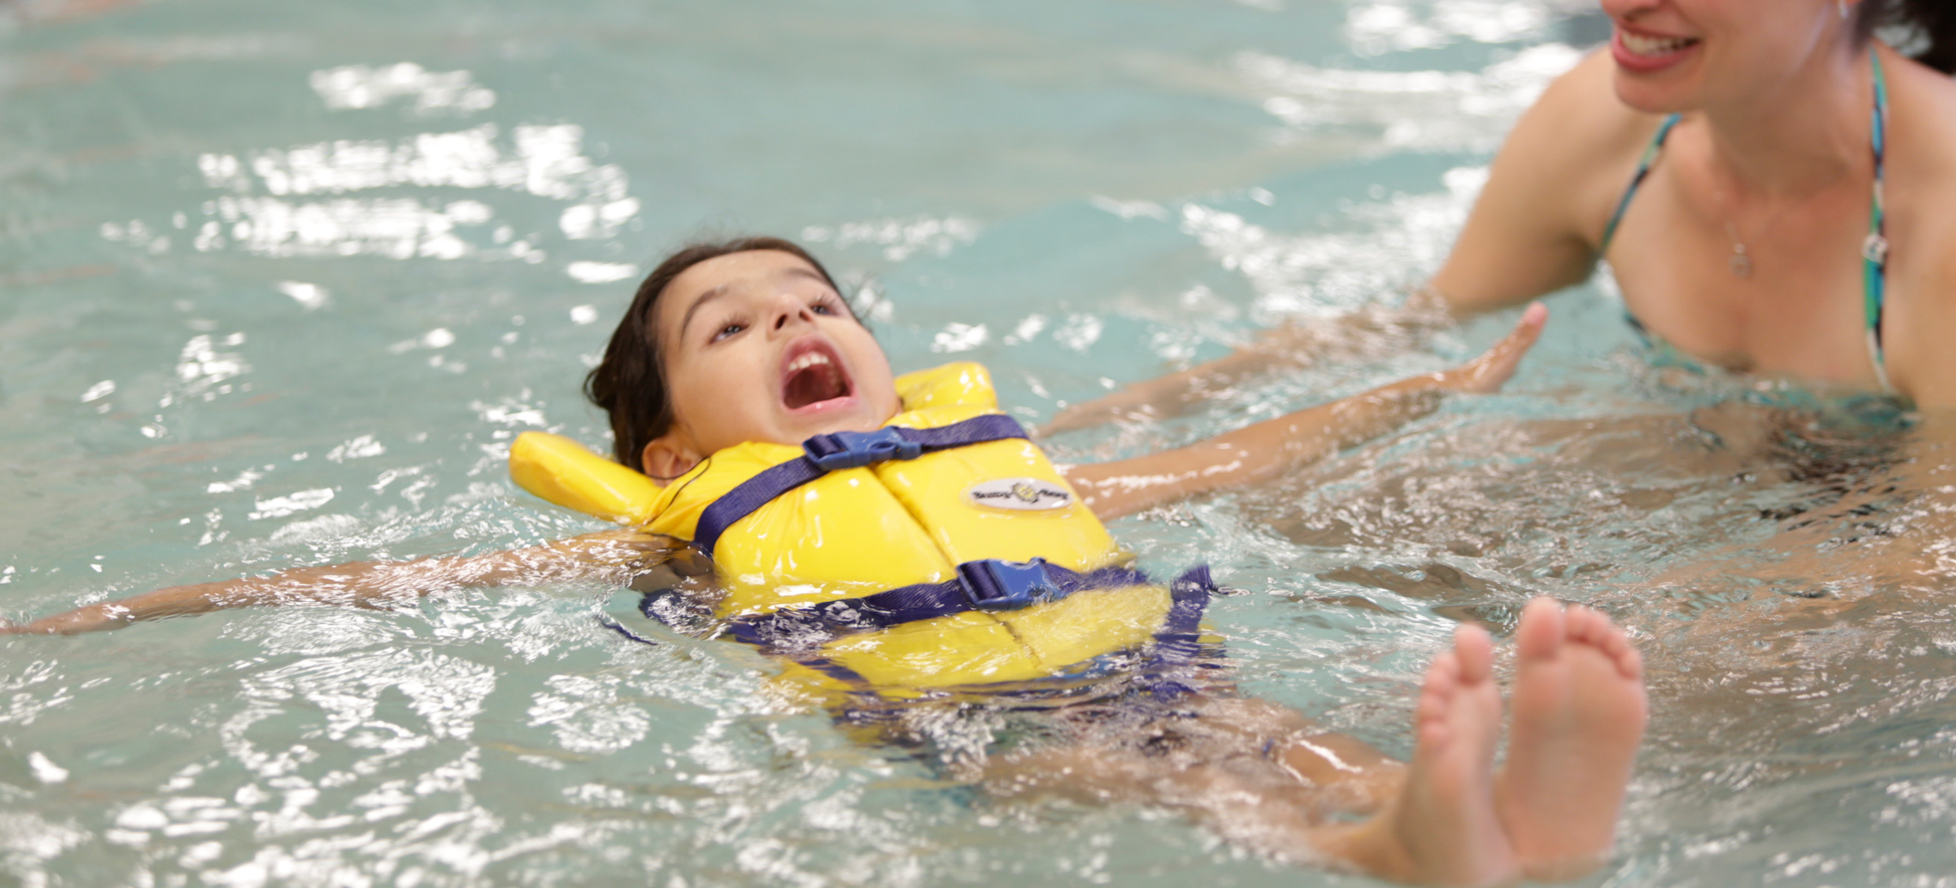 Little girl doing a backfloat in a pool with life jacket on